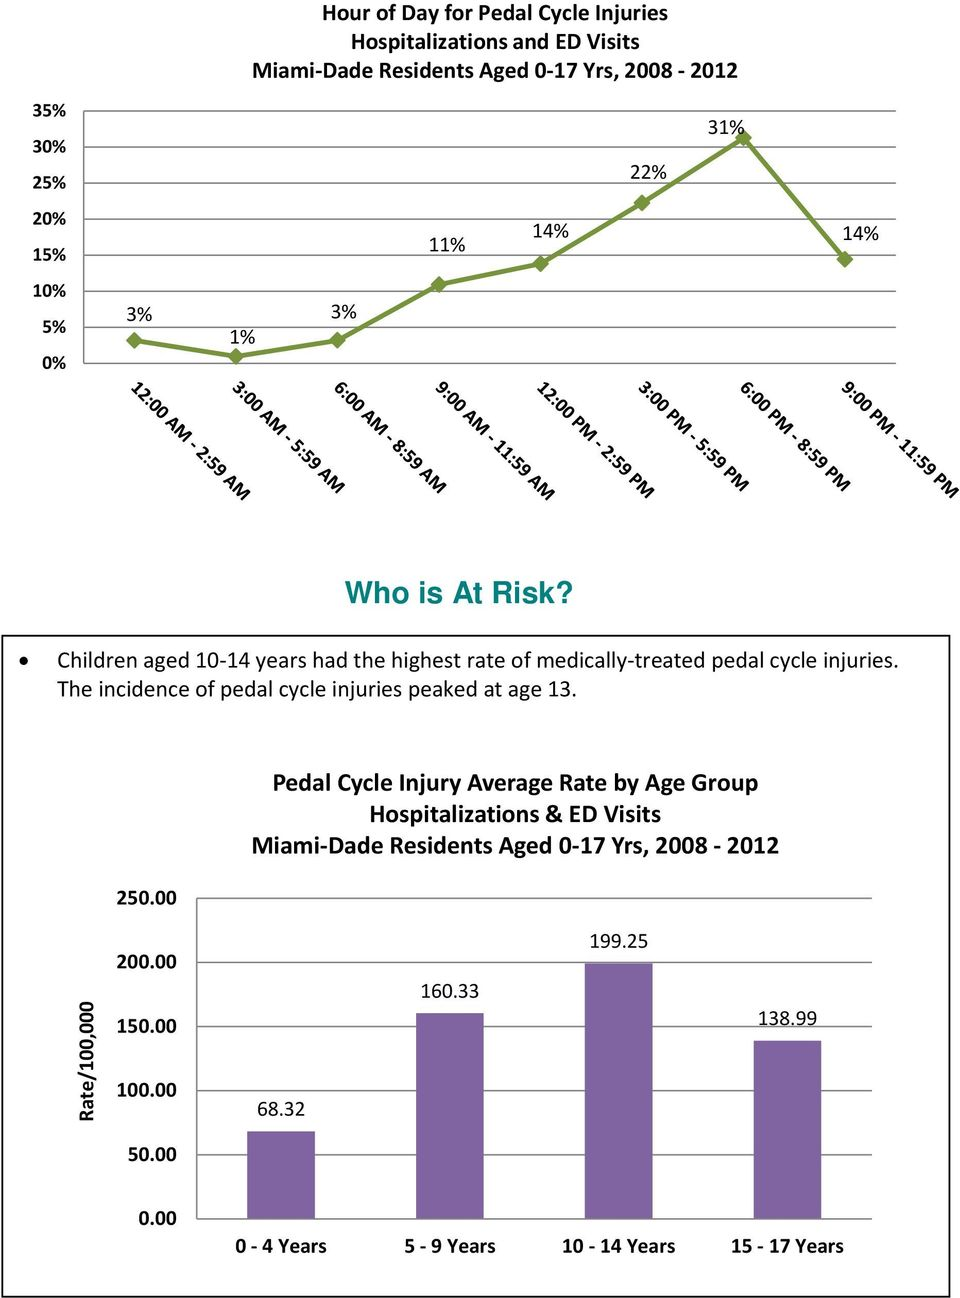 Children aged 10-14 years had the highest rate of medically-treated pedal cycle injuries.